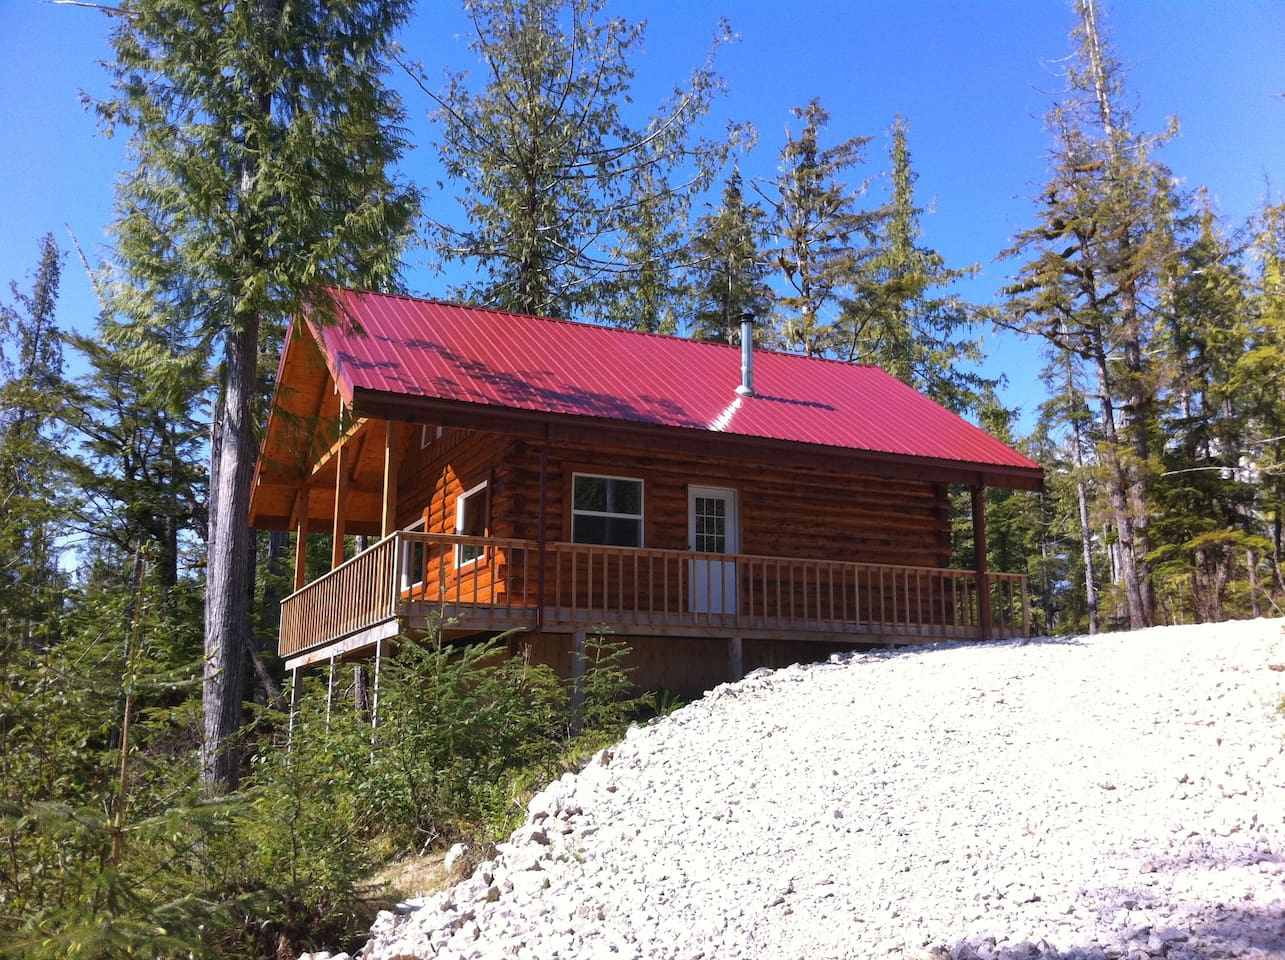 Beautiful D-Log Cabin just minutes away from your sports fishing adventure or wildlife veiwing.